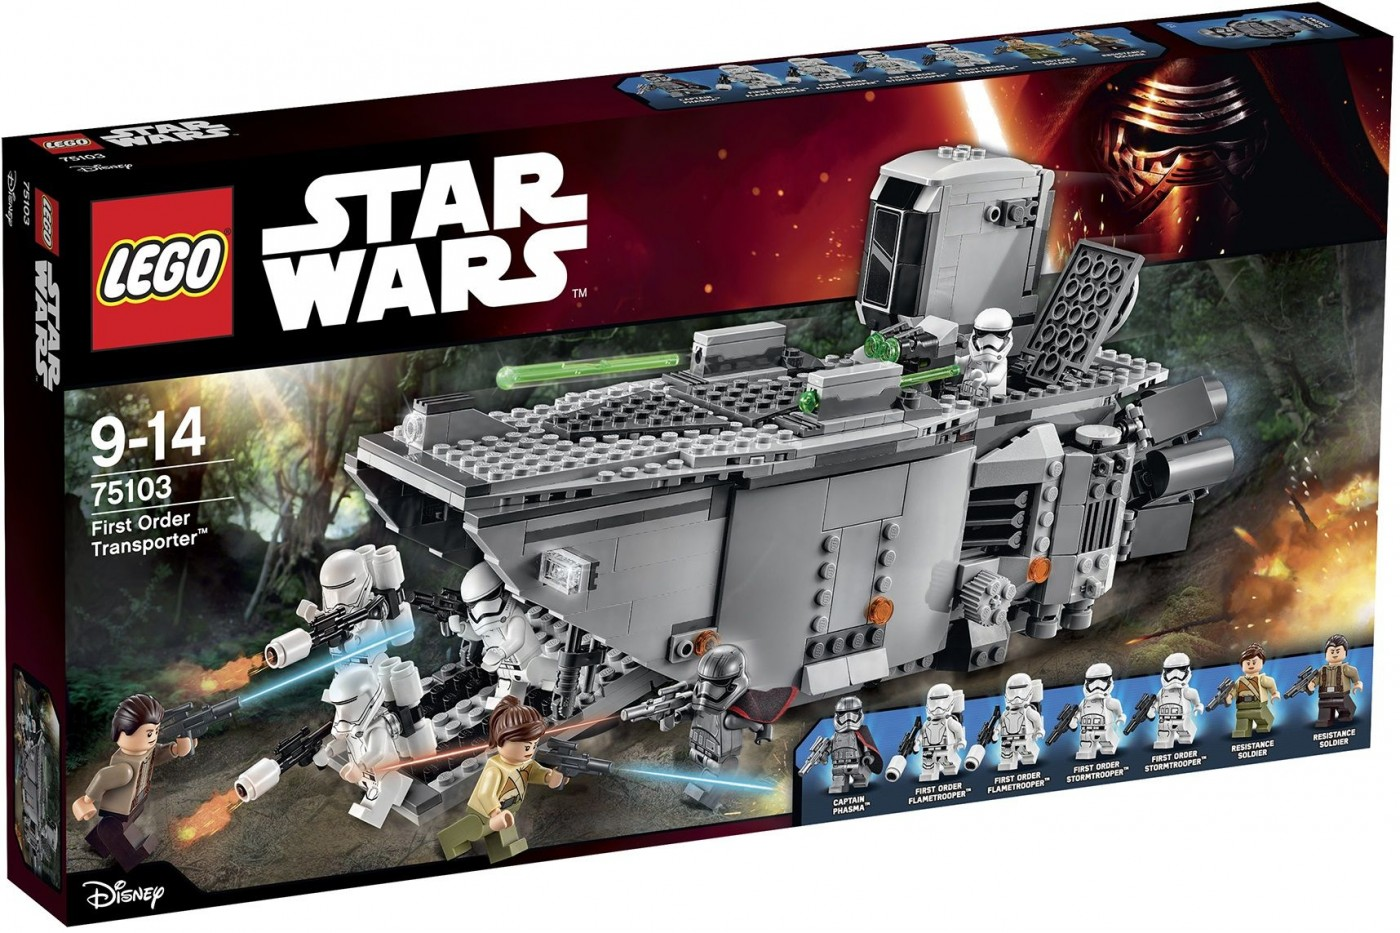 75103 First Order Transporter : The only one in this release with ...